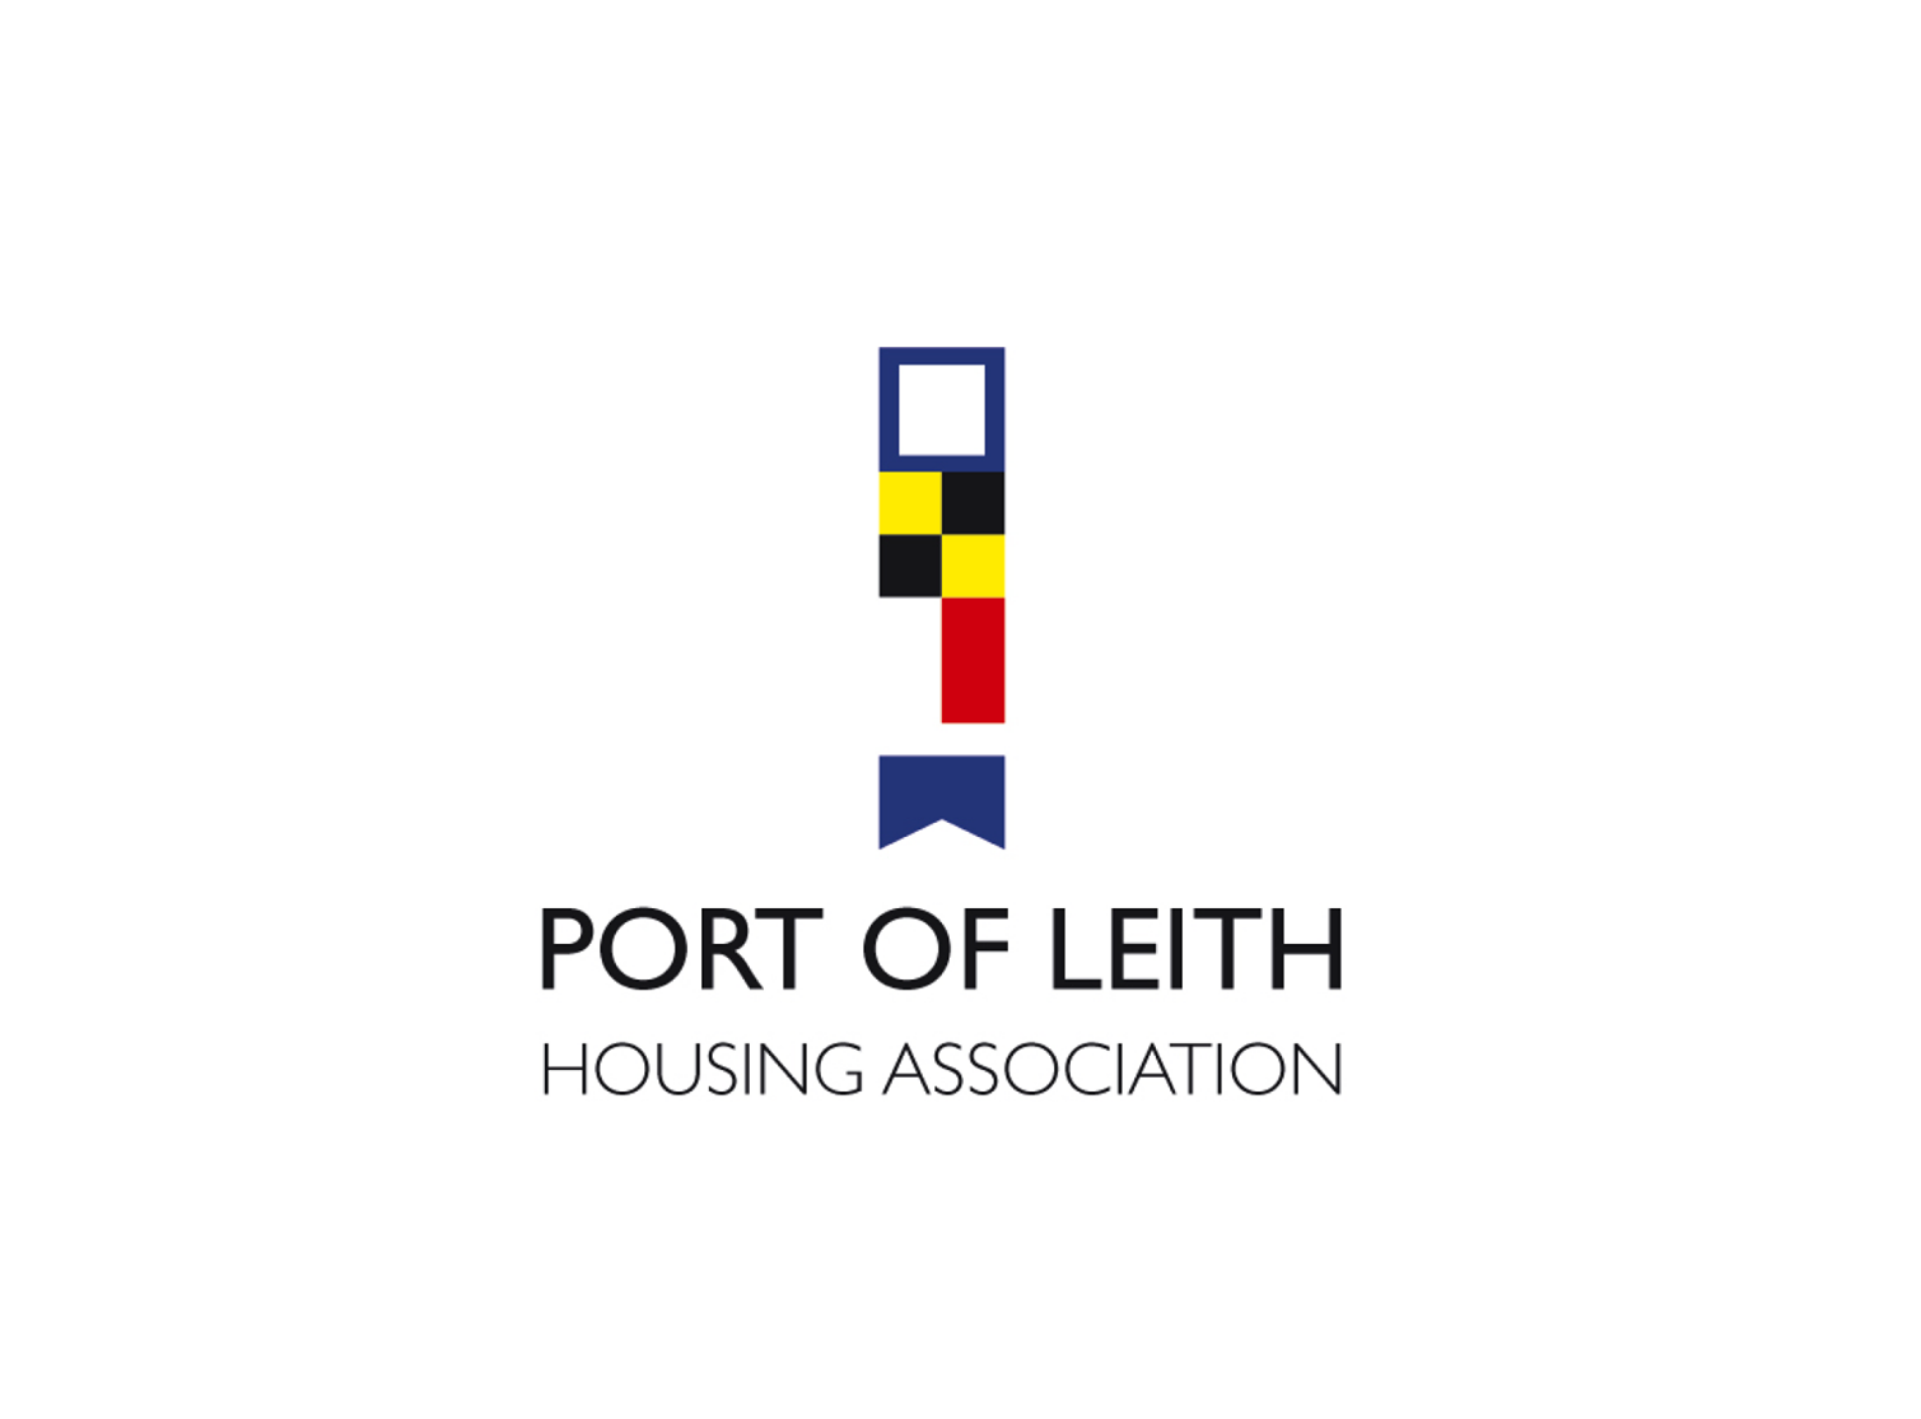 Port of Leith Housing Association logo